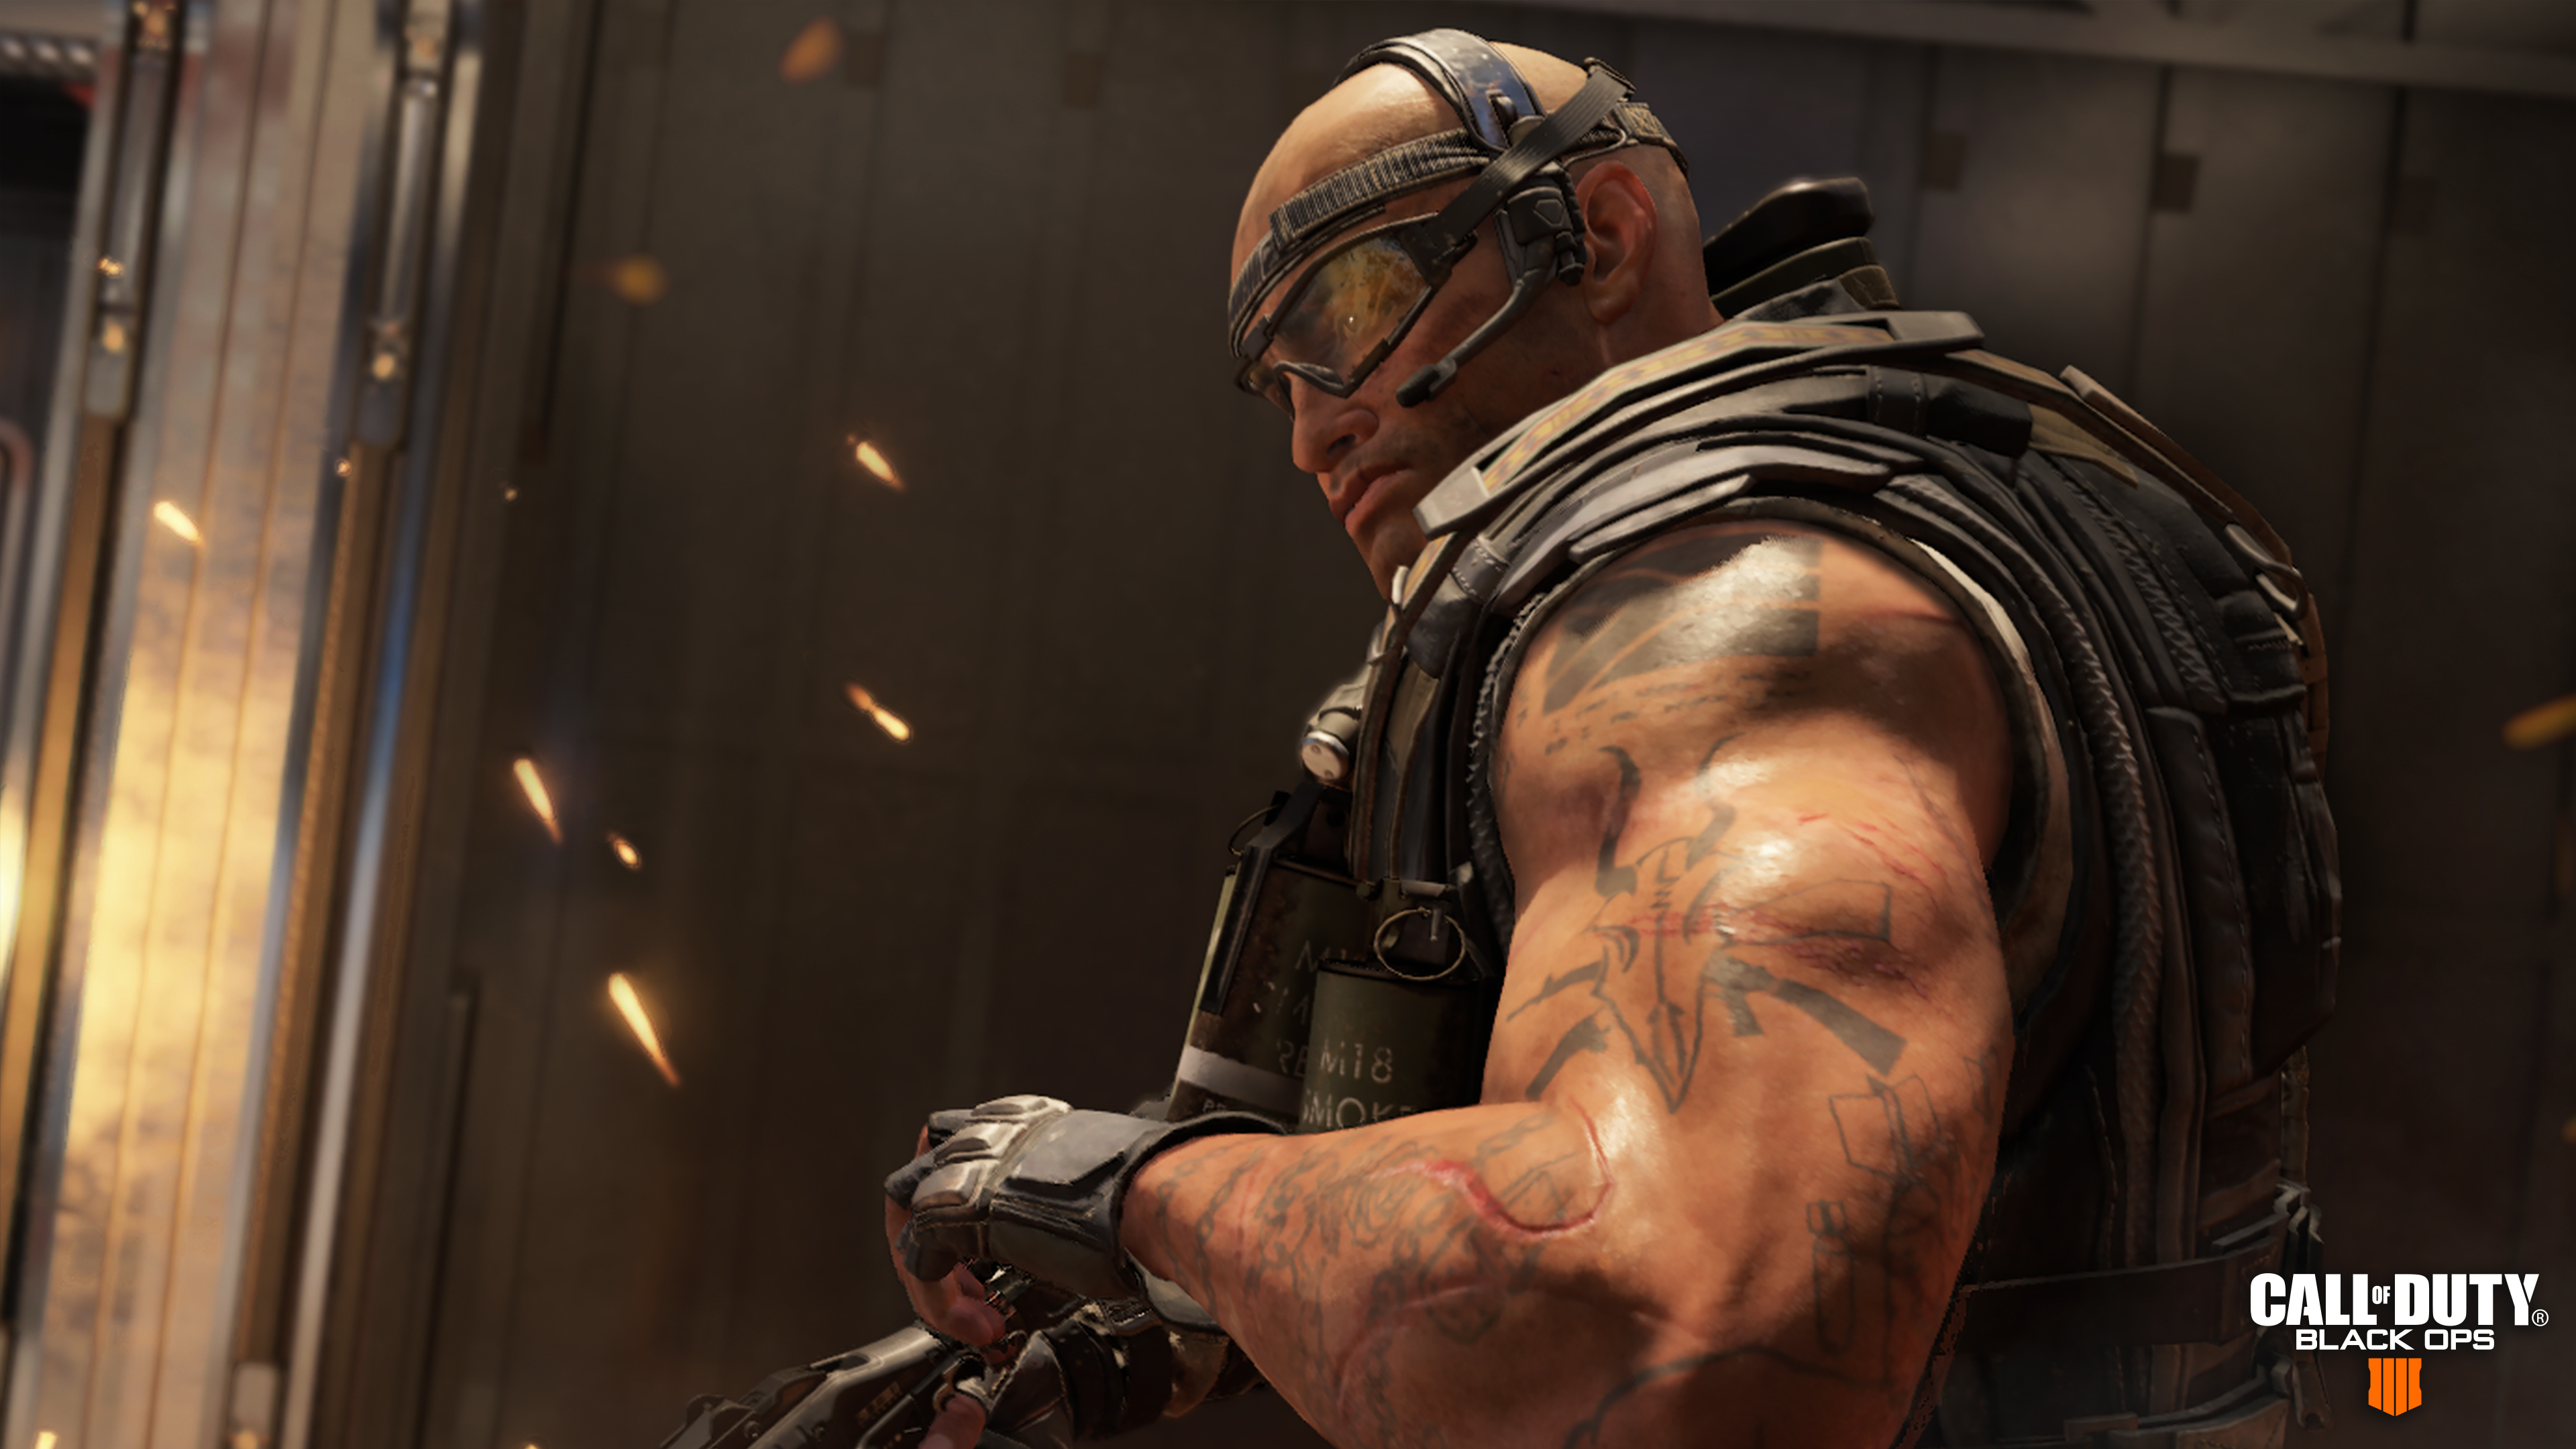 Call of Duty: Black Ops 4's Zombies mode first details - Polygon